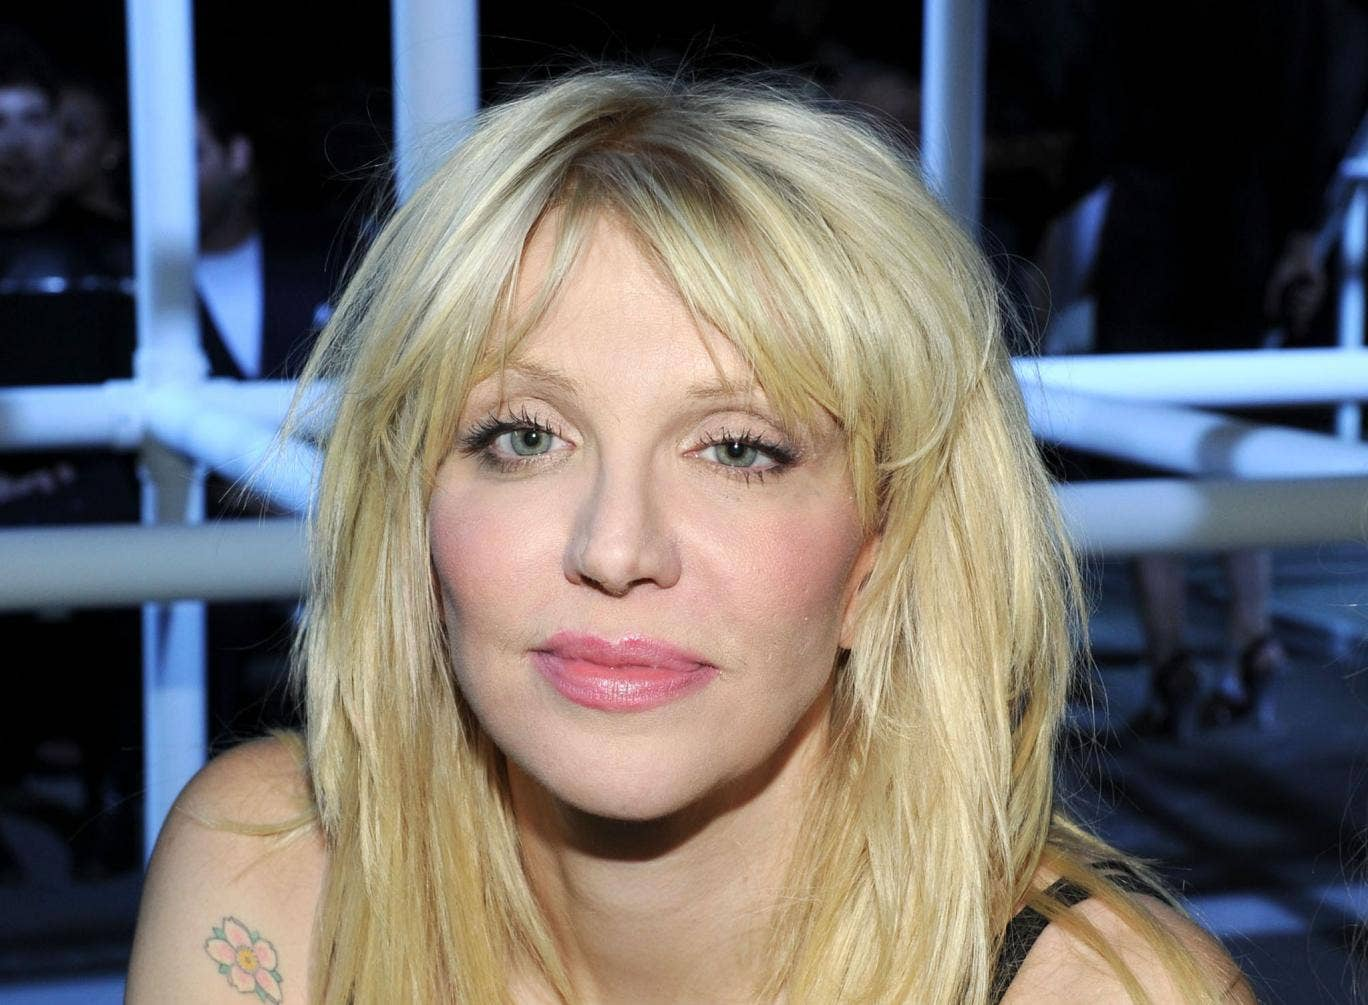 Courtney Love is set to star in the final season of Sons of Anarchy